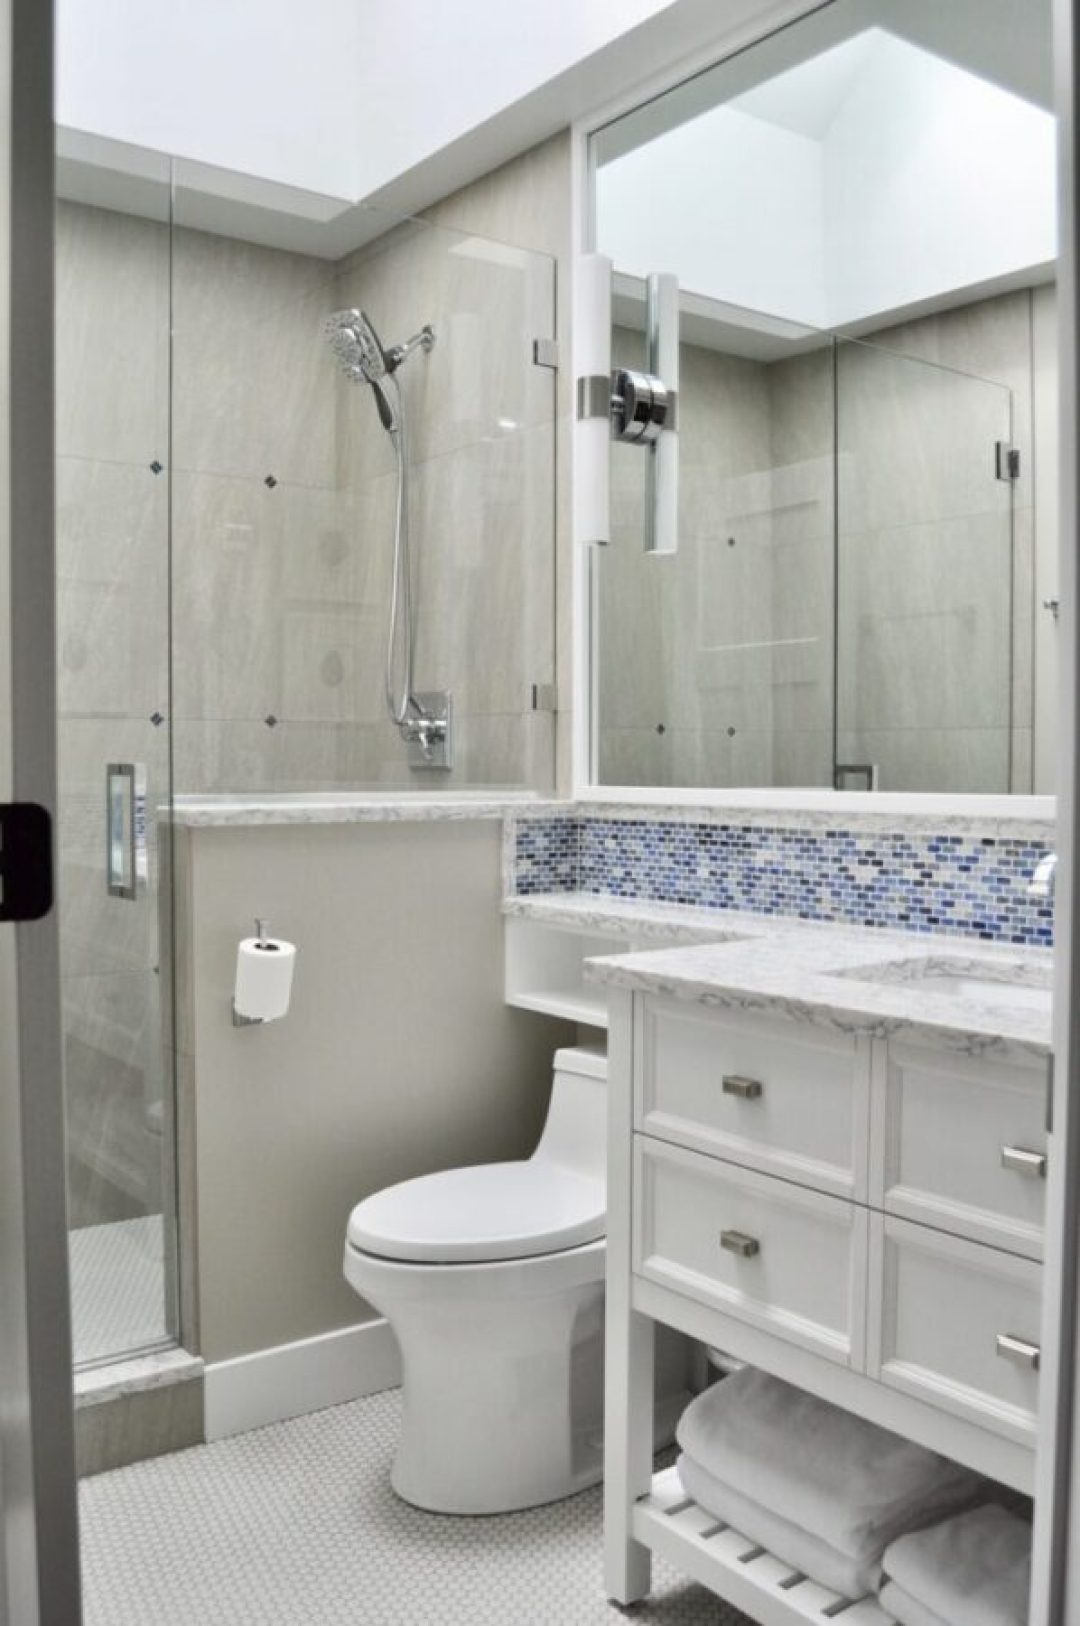 Renovated bathroom with skylight to add in natural light at this Toledo Airbnb